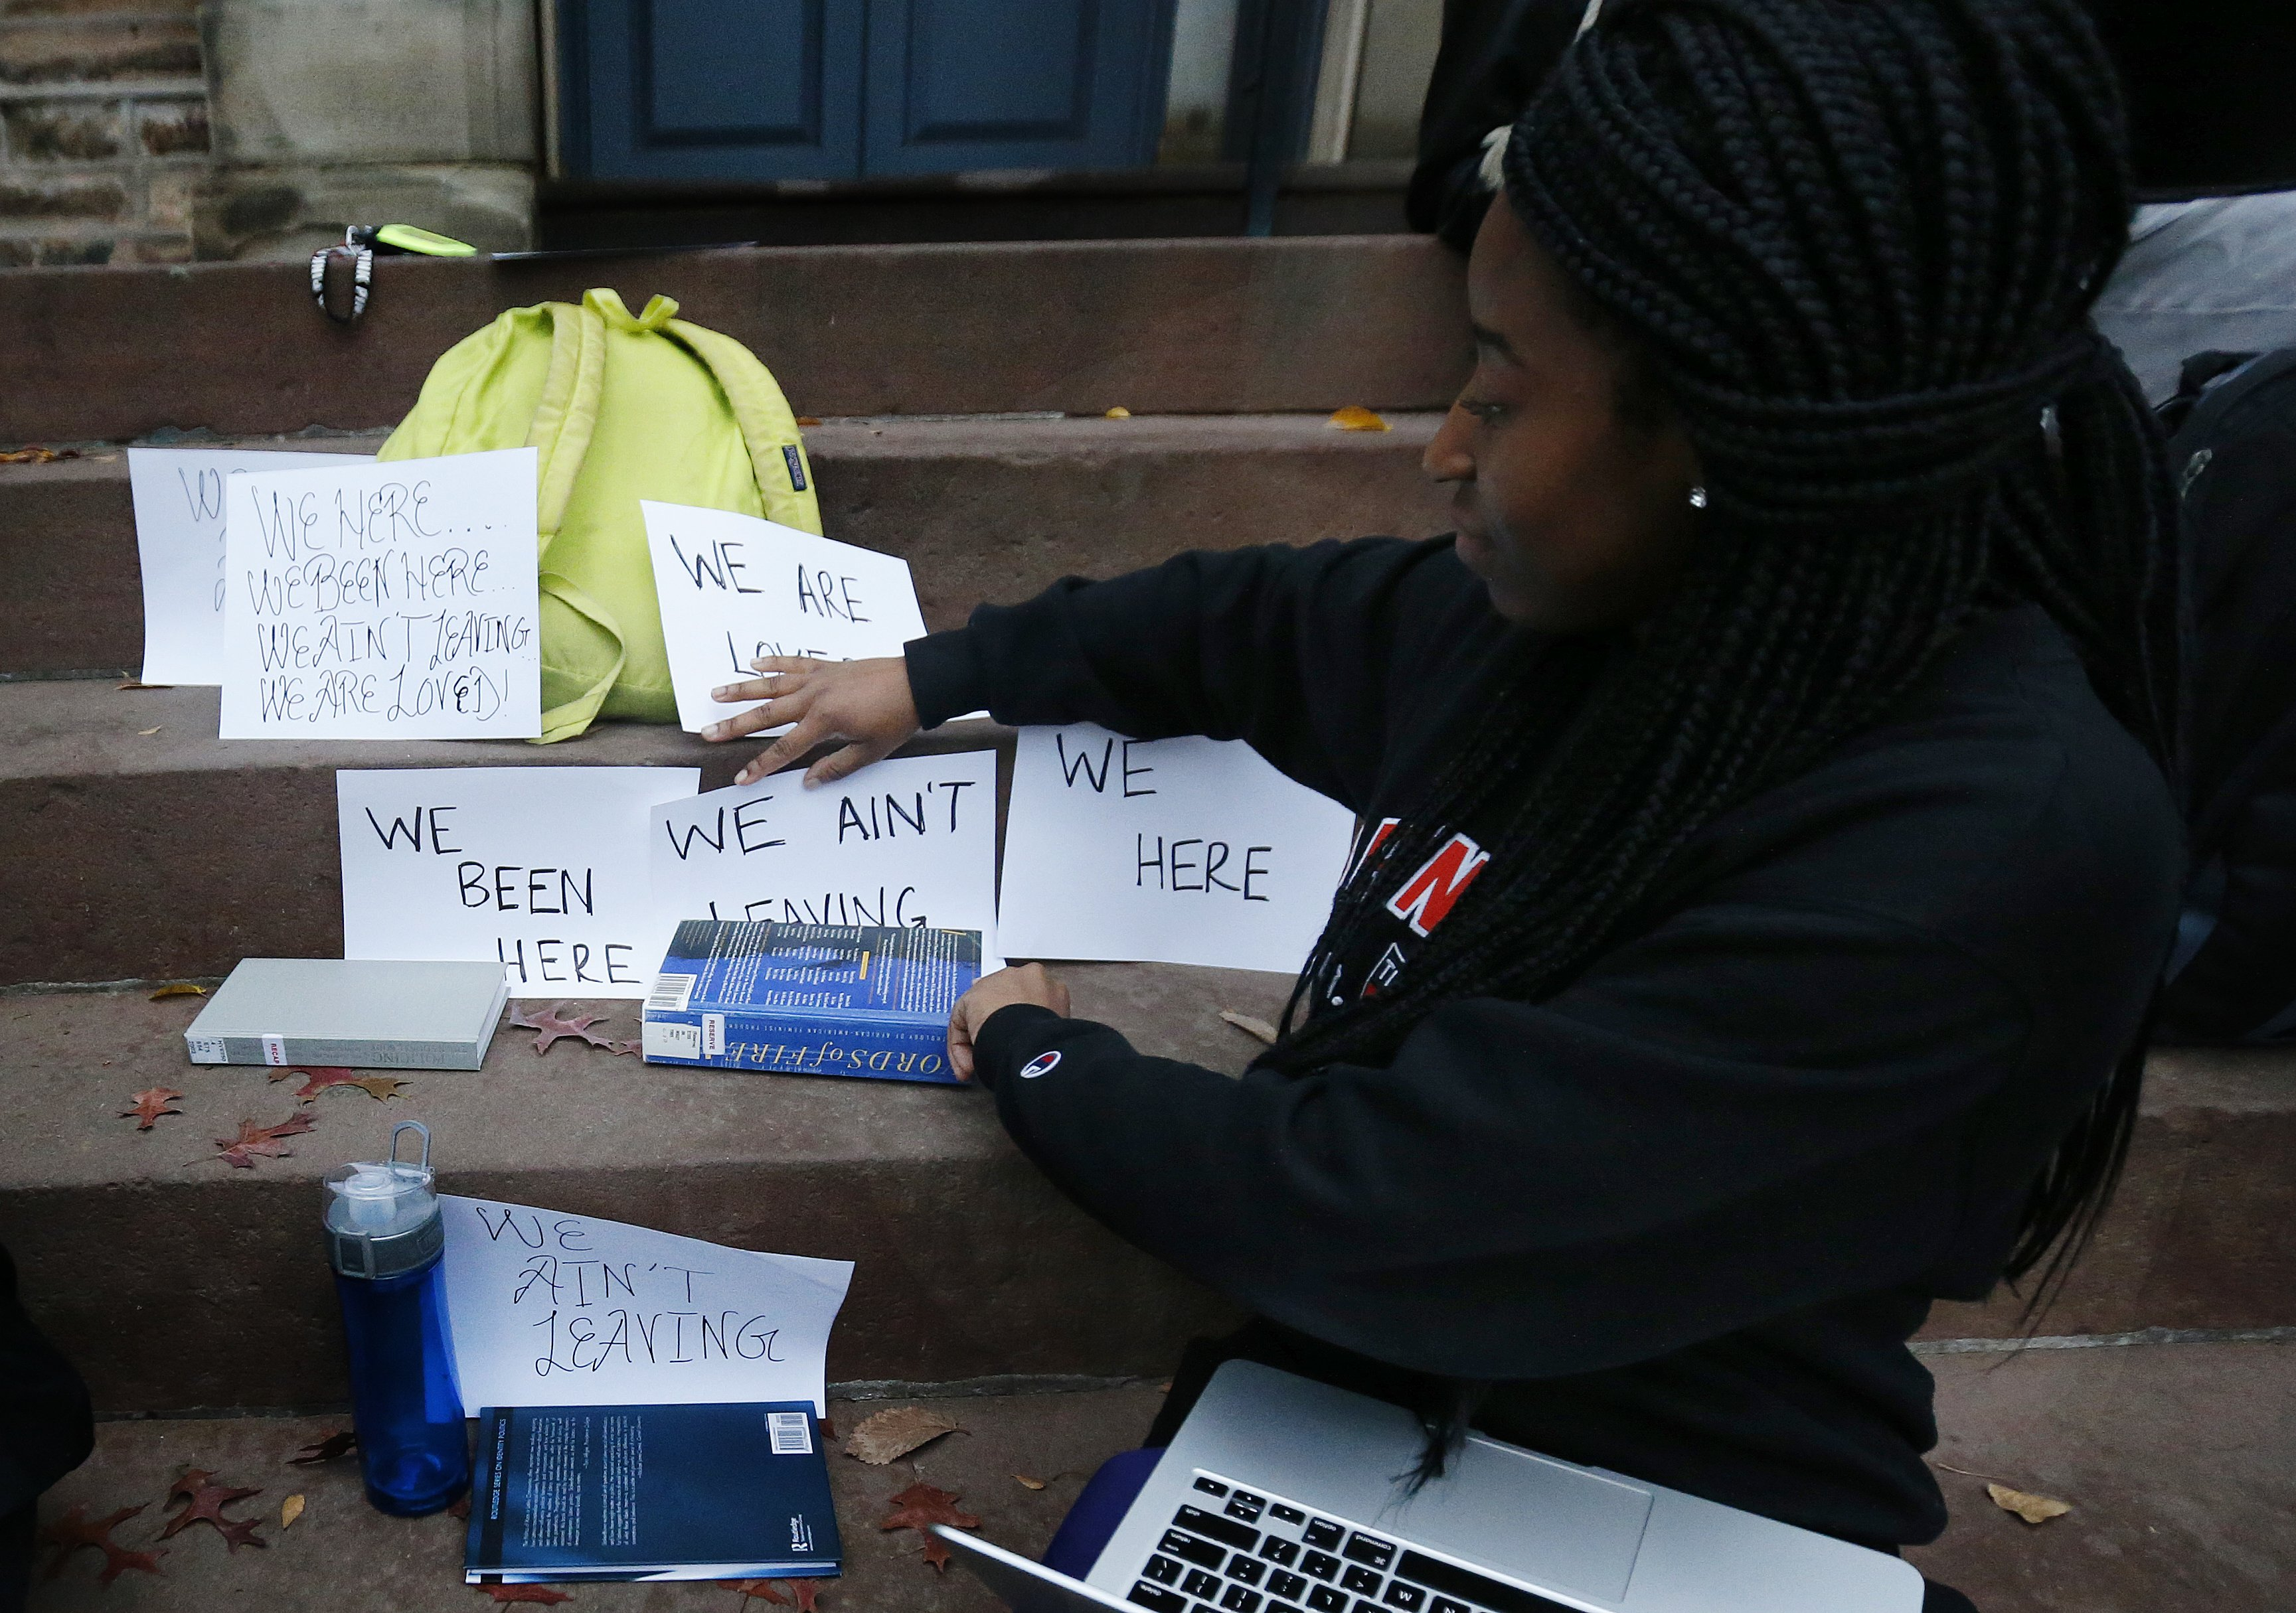 A student shows signs made for a sit-in to demand changes to improve the social and academic experience of black students, at Princeton University in Princeton, N.J. on Nov. 18, 2015.